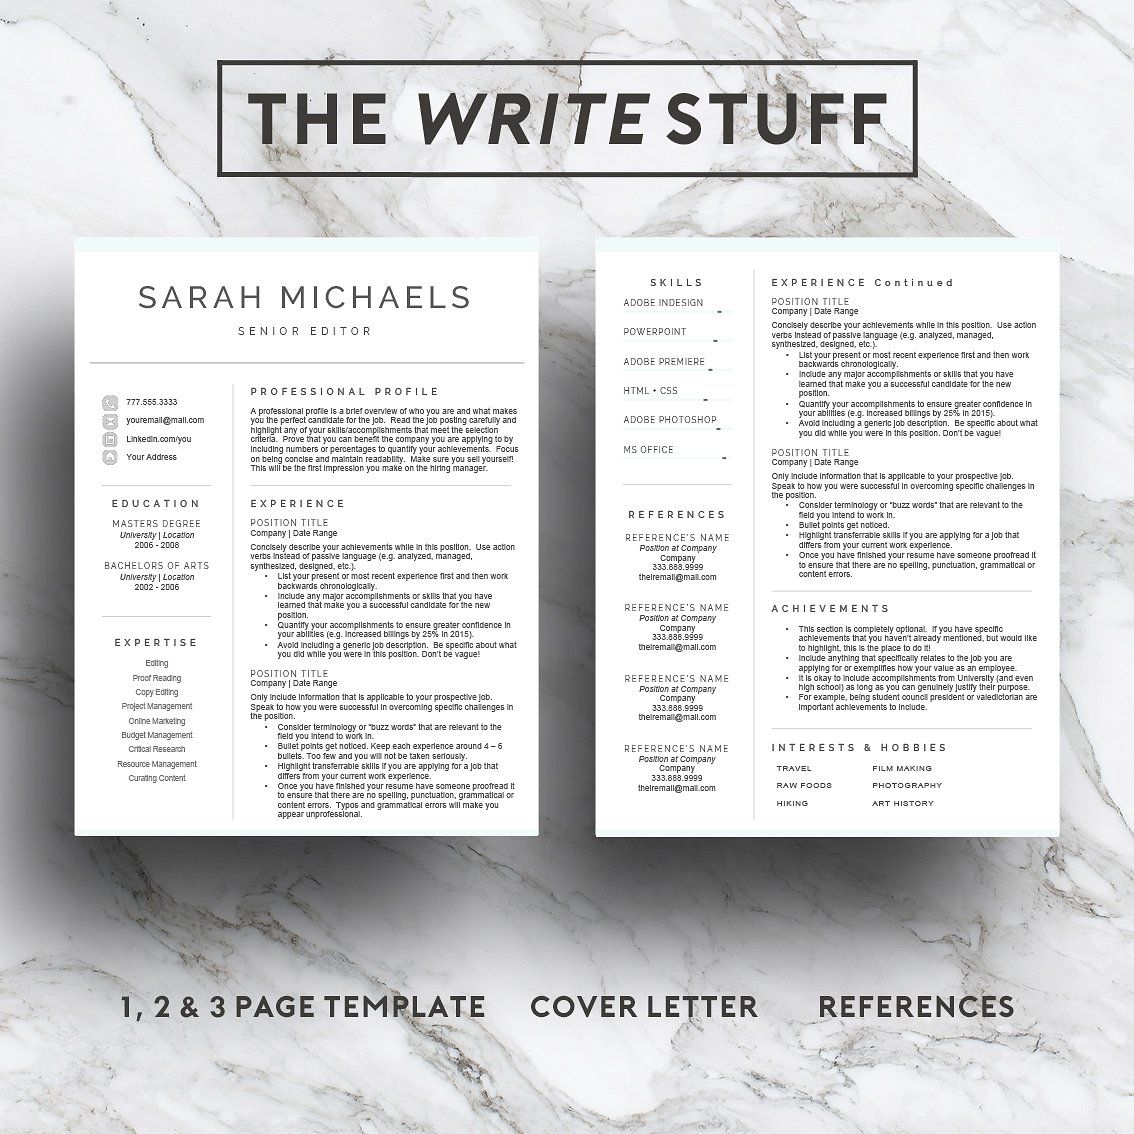 Resume template cv 1 2 3 page by